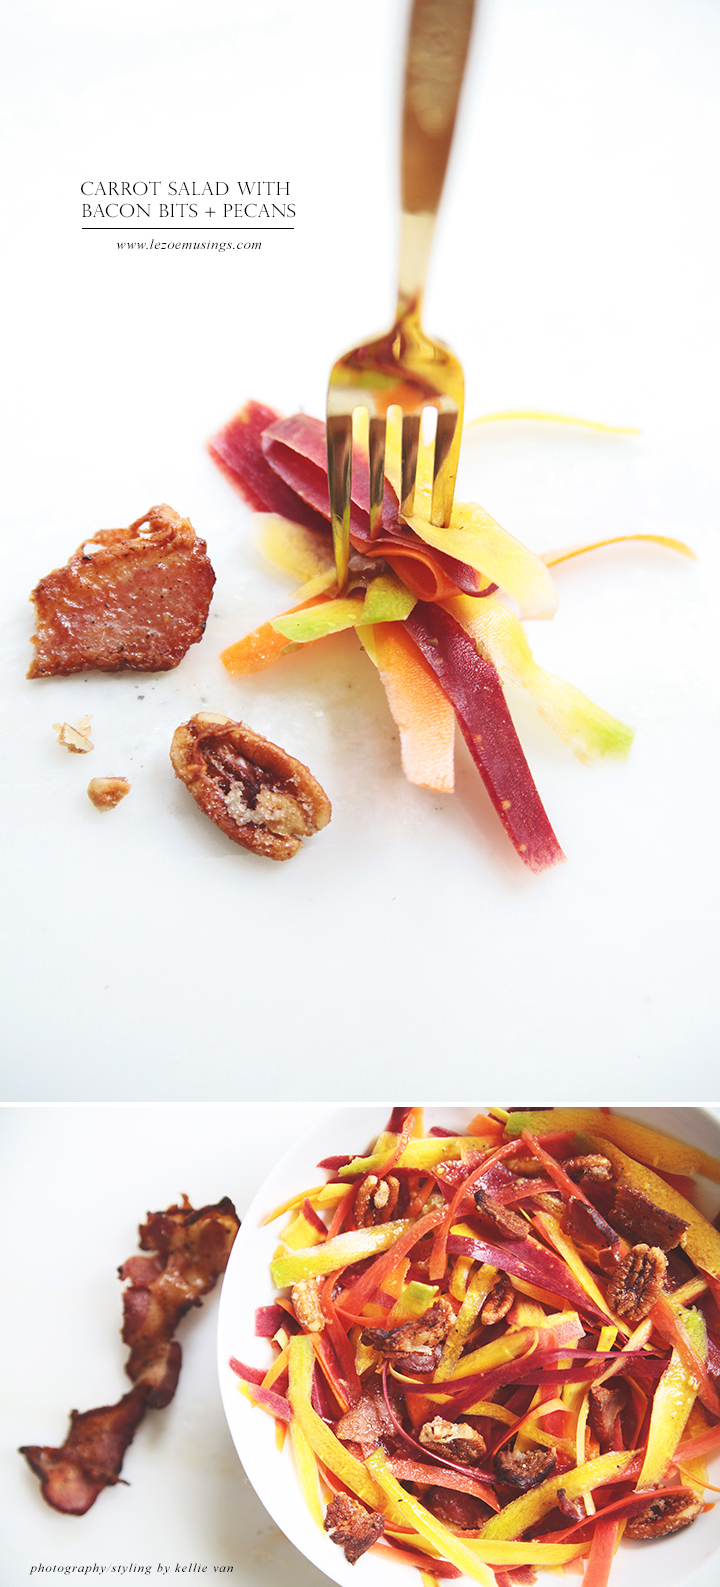 Carrot Salad with Bacon Bits + Pecans by Le Zoe Musings2